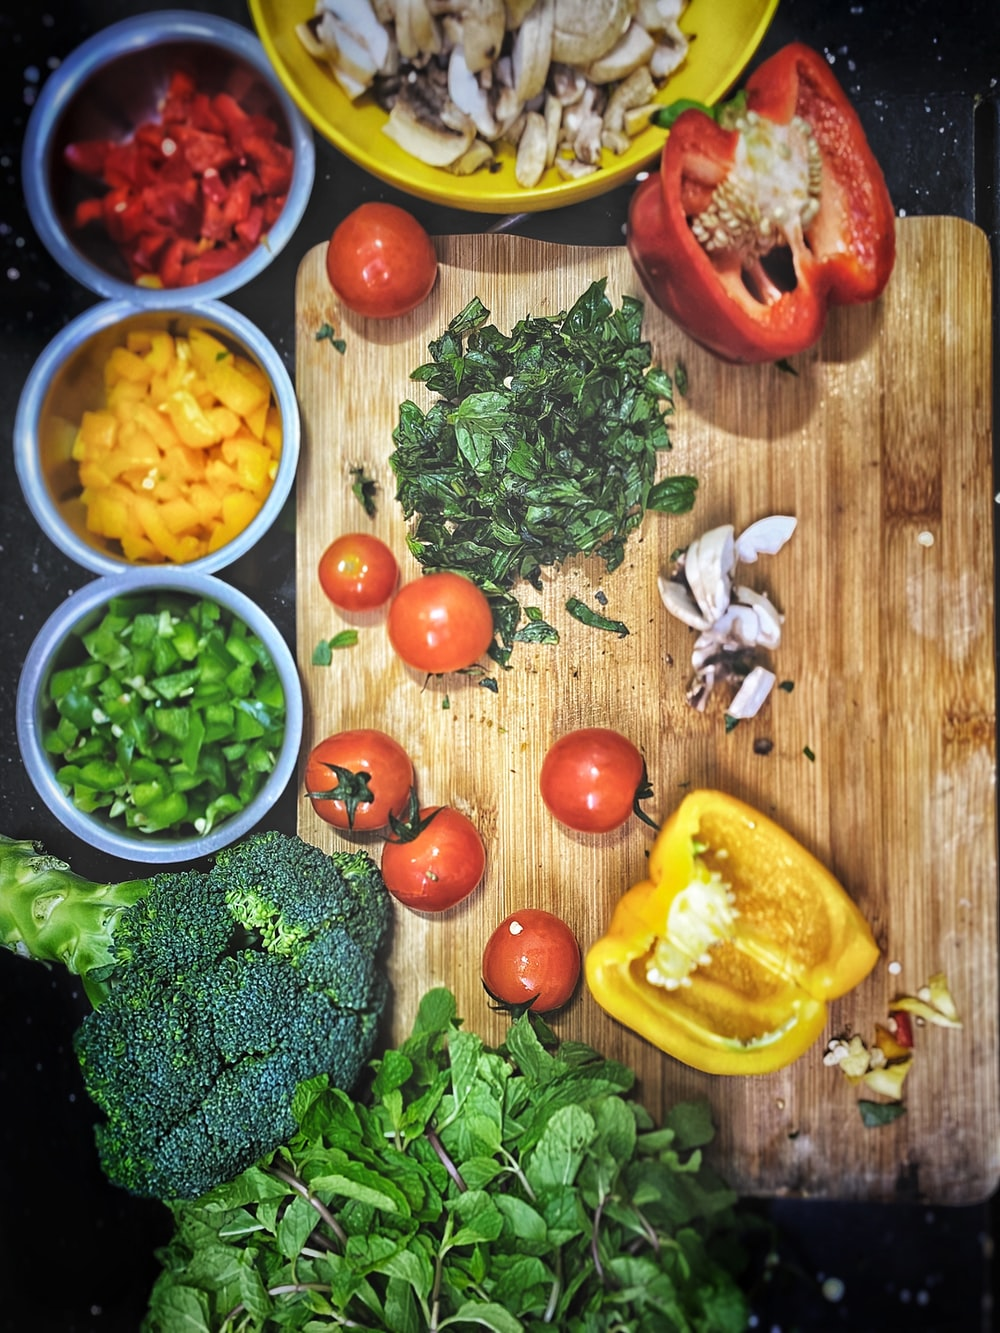 orange tomatoes near sliced yellow bell pepper, broccoli on wooden chopping board